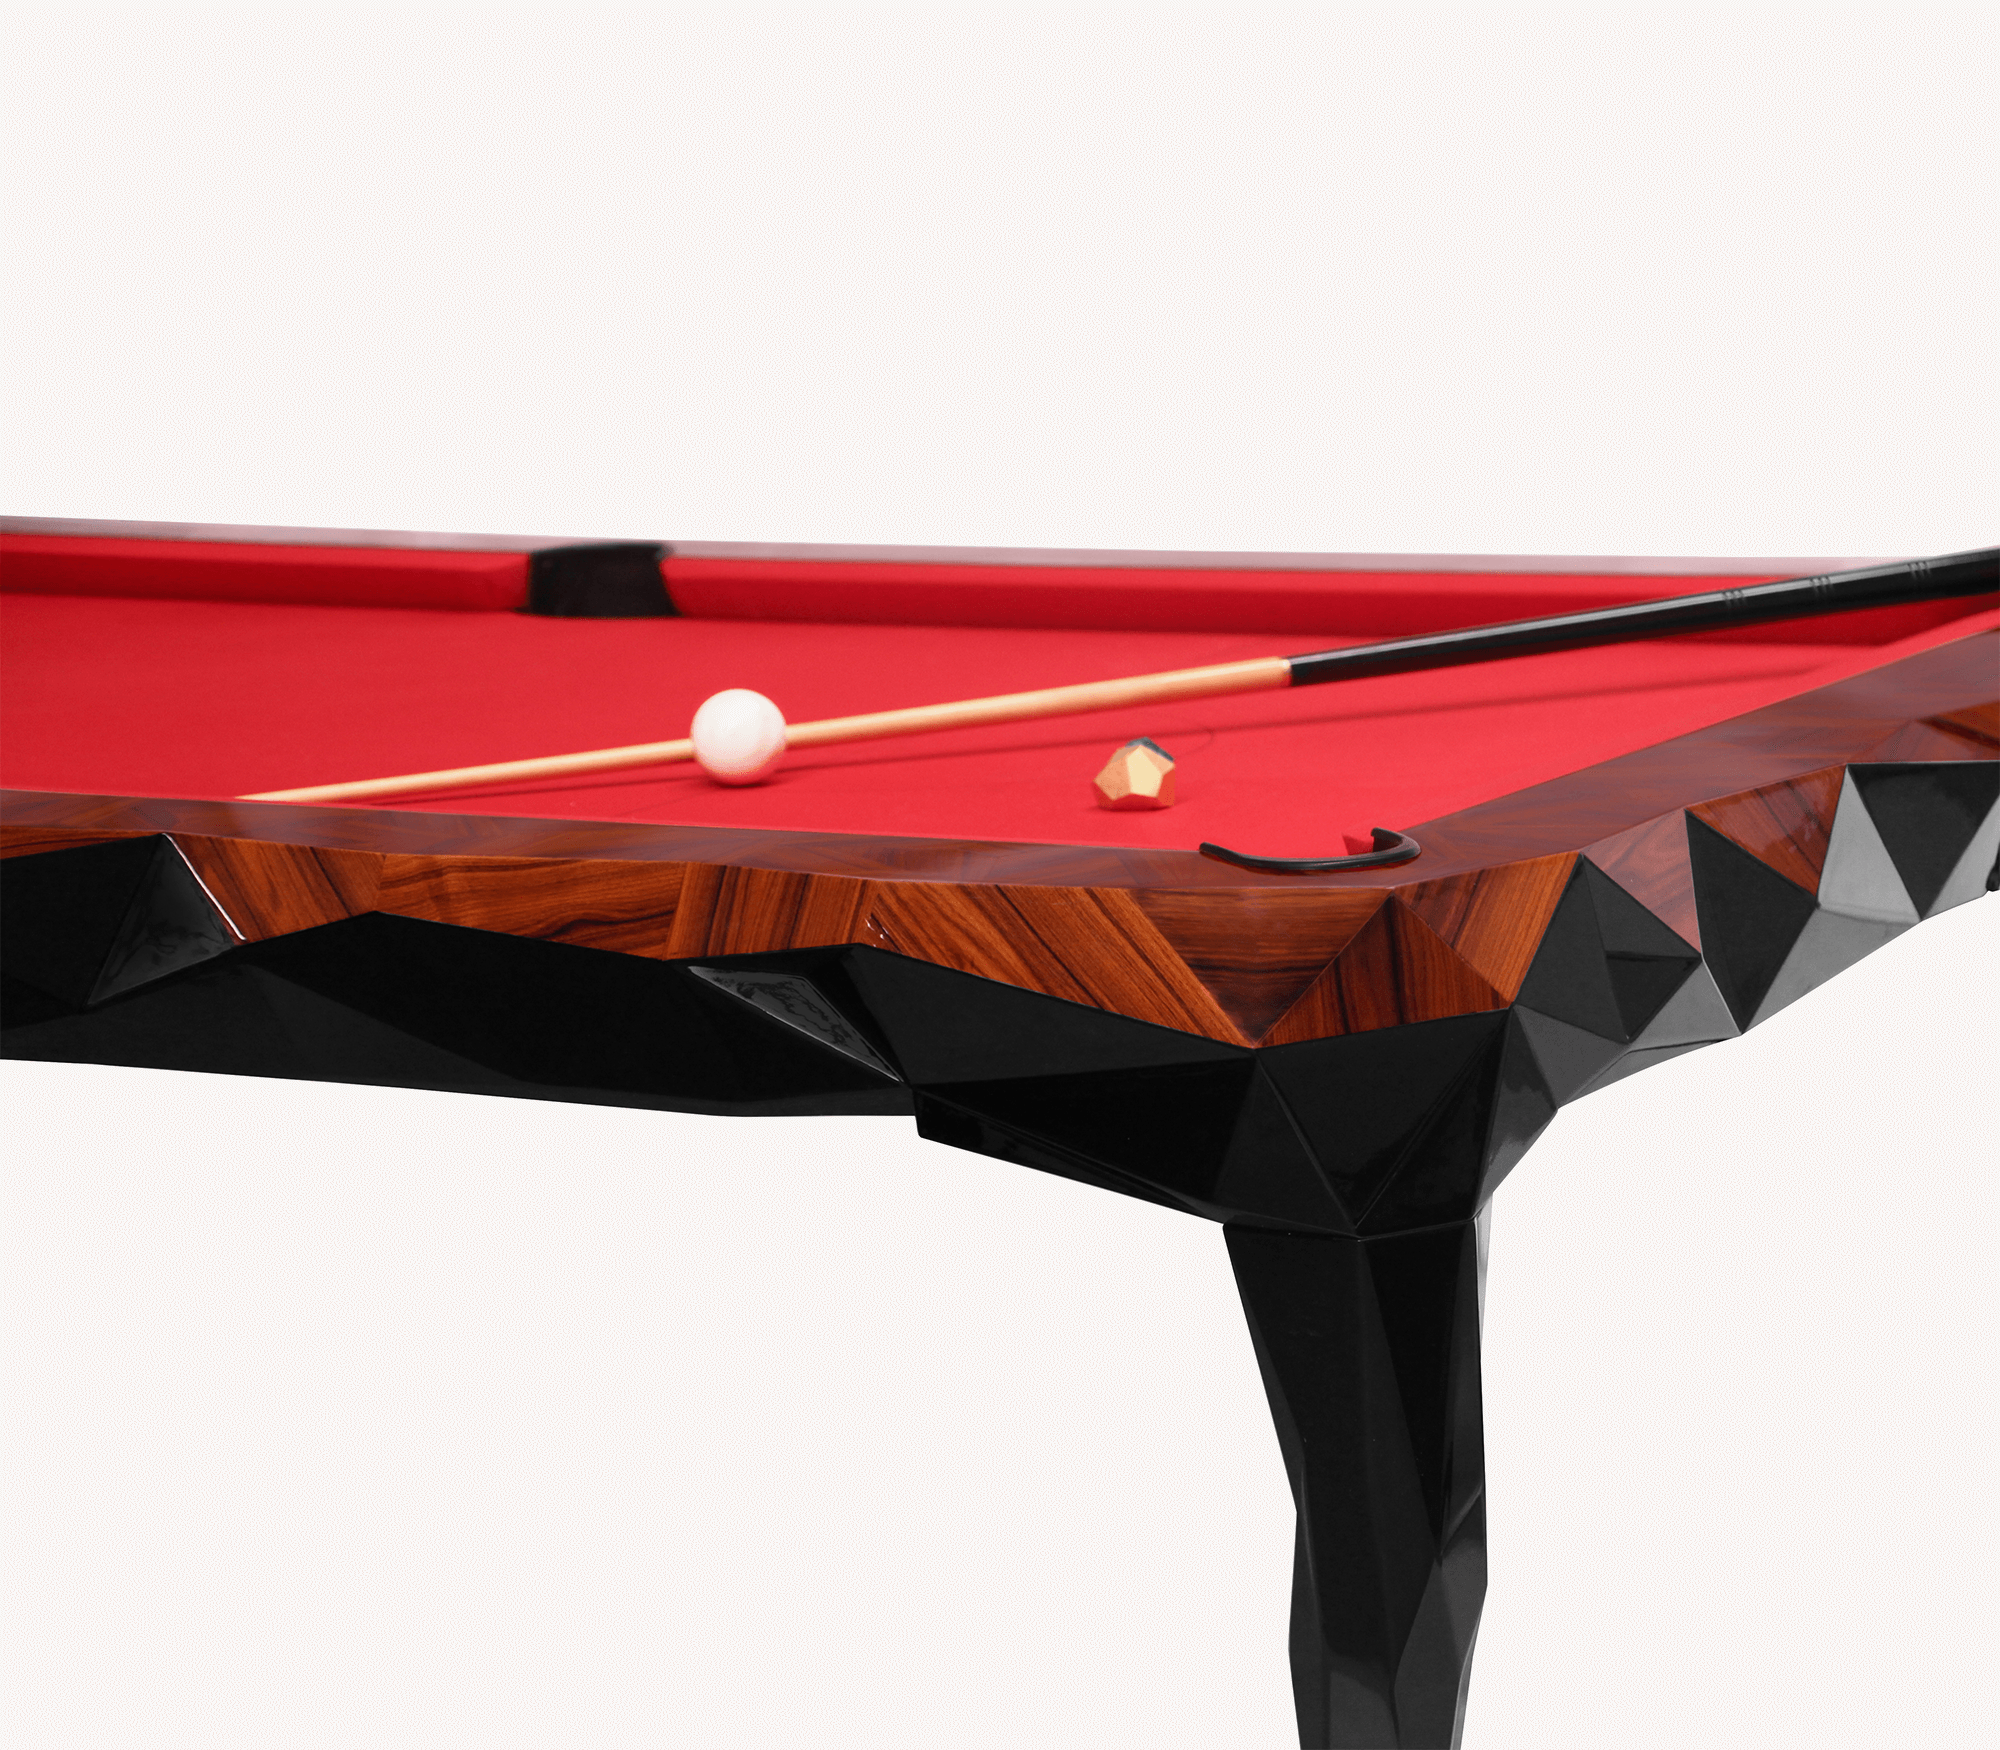 Royal Snooker Table by Boca do Lobo